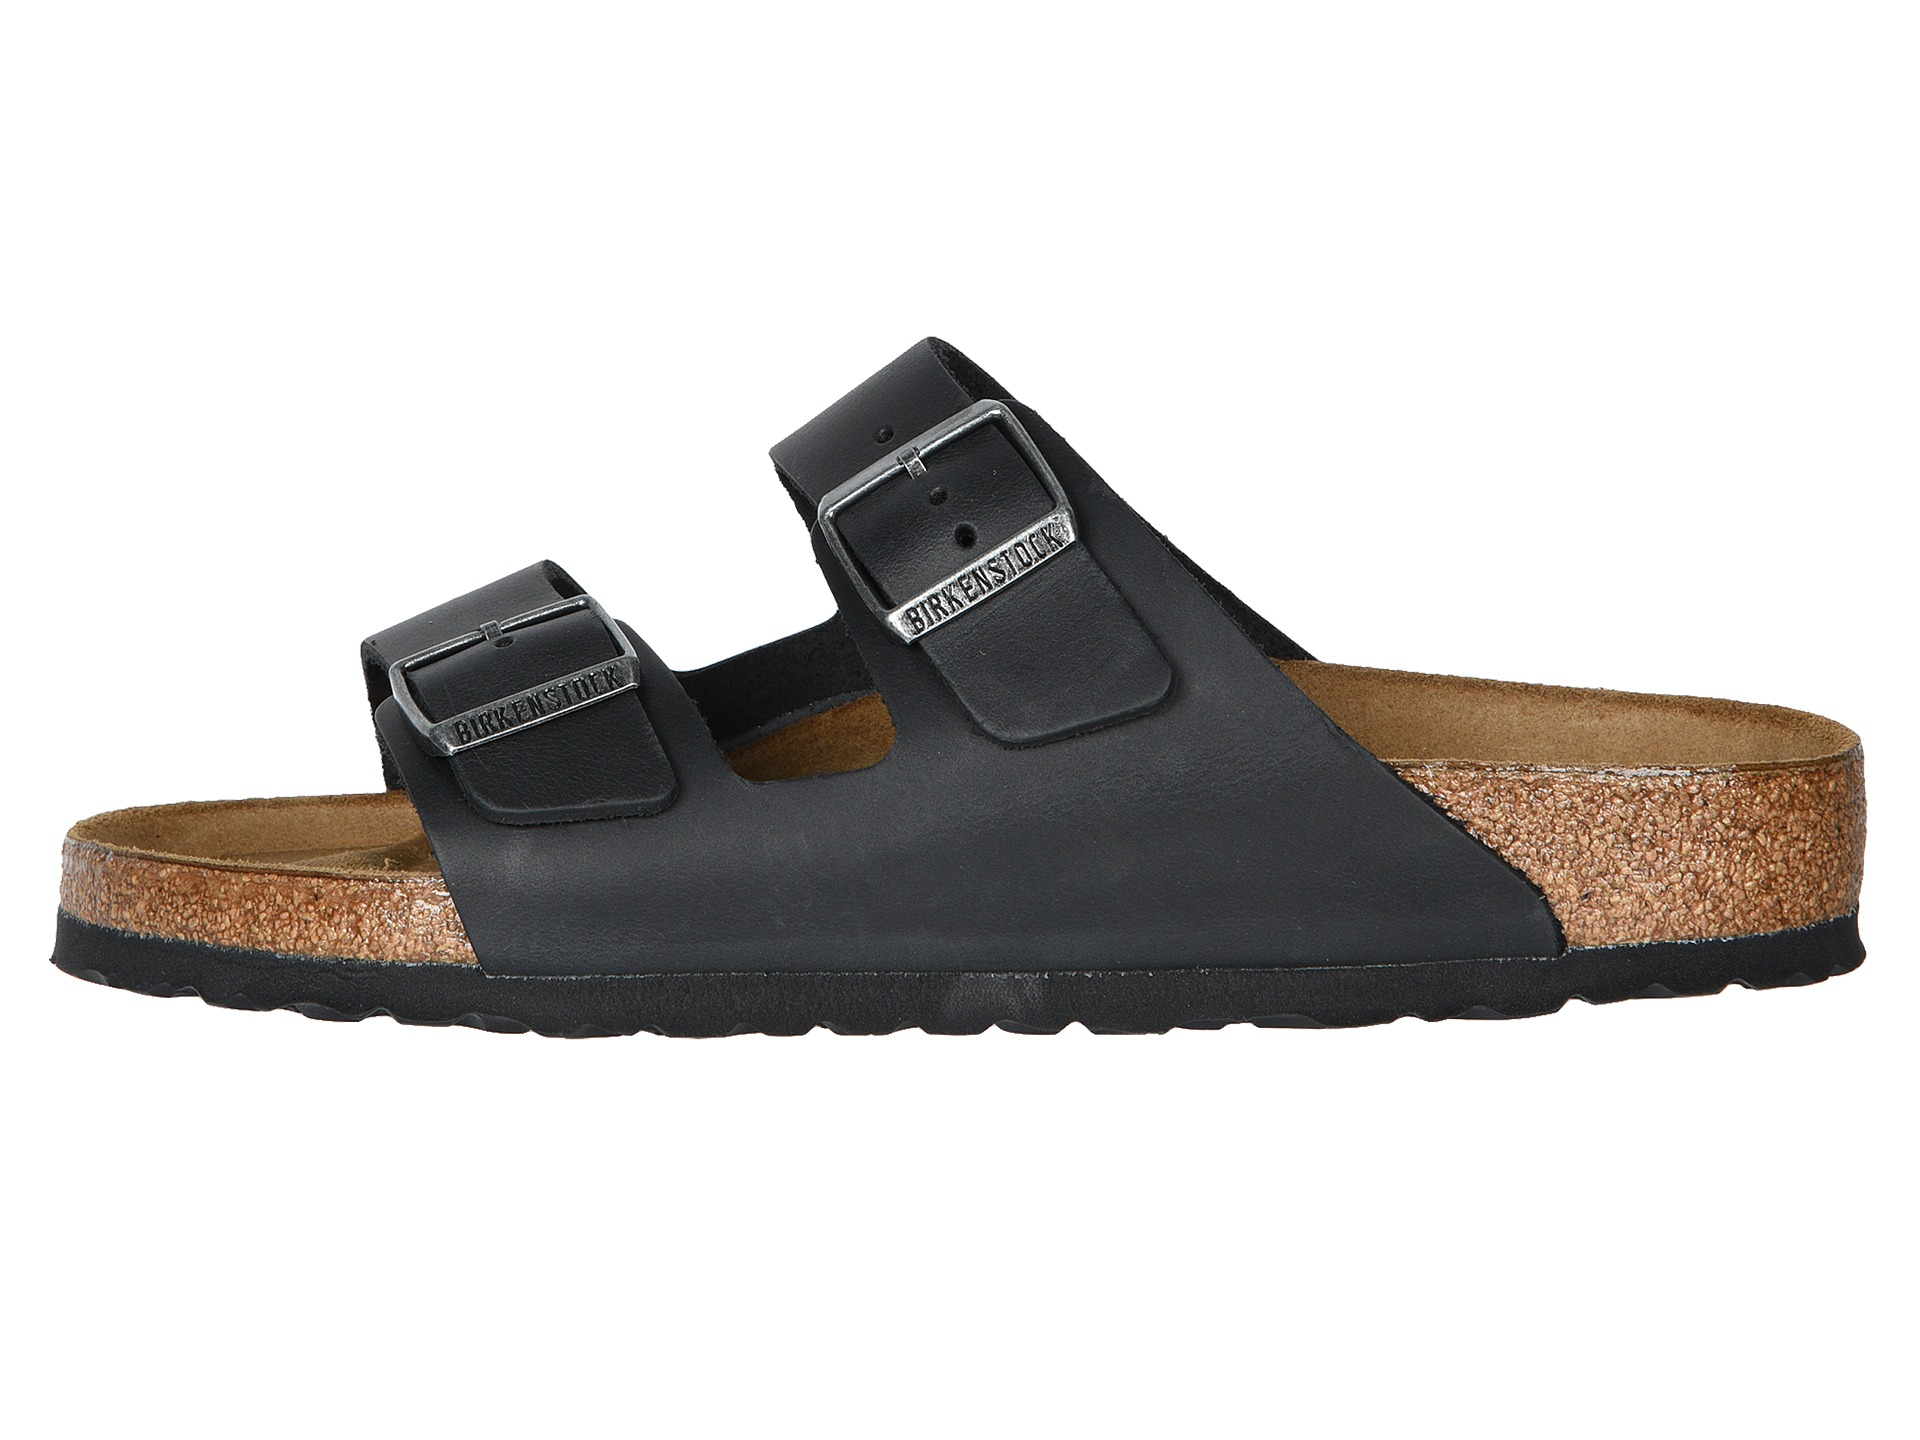 Unisex Arizona Sandals Birkenstock